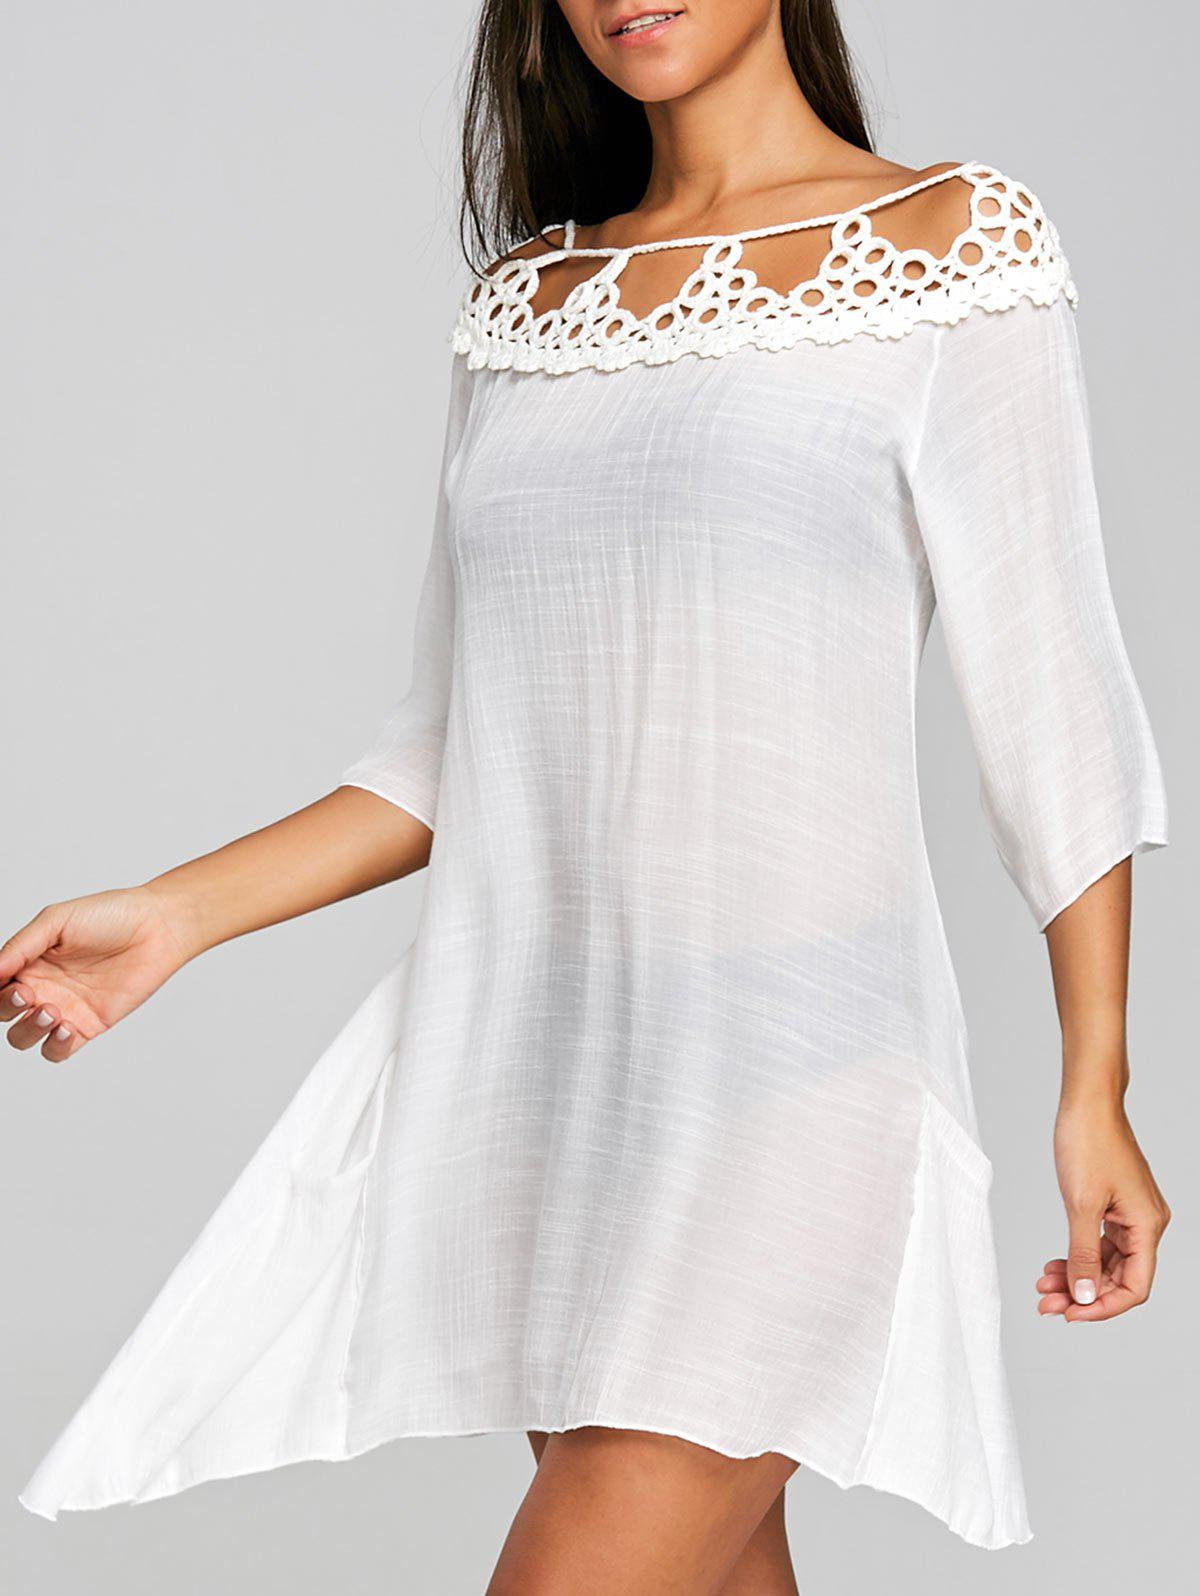 Shop Sheer Crochet Insert Cover Up Dress